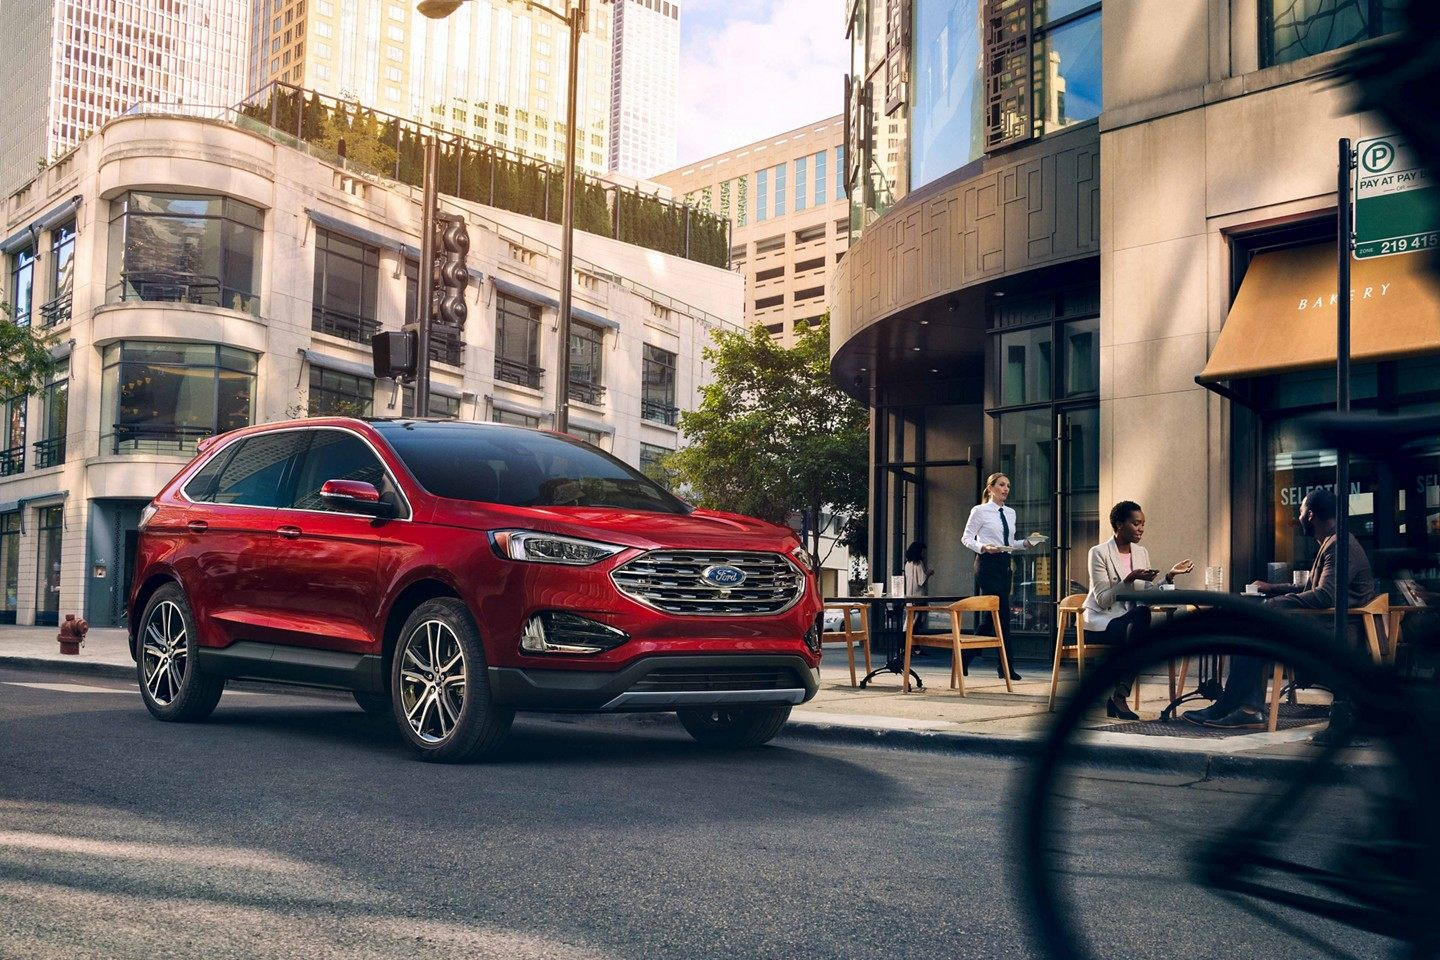 2019 Ford Edge Ruby Red Exterior Side Picture